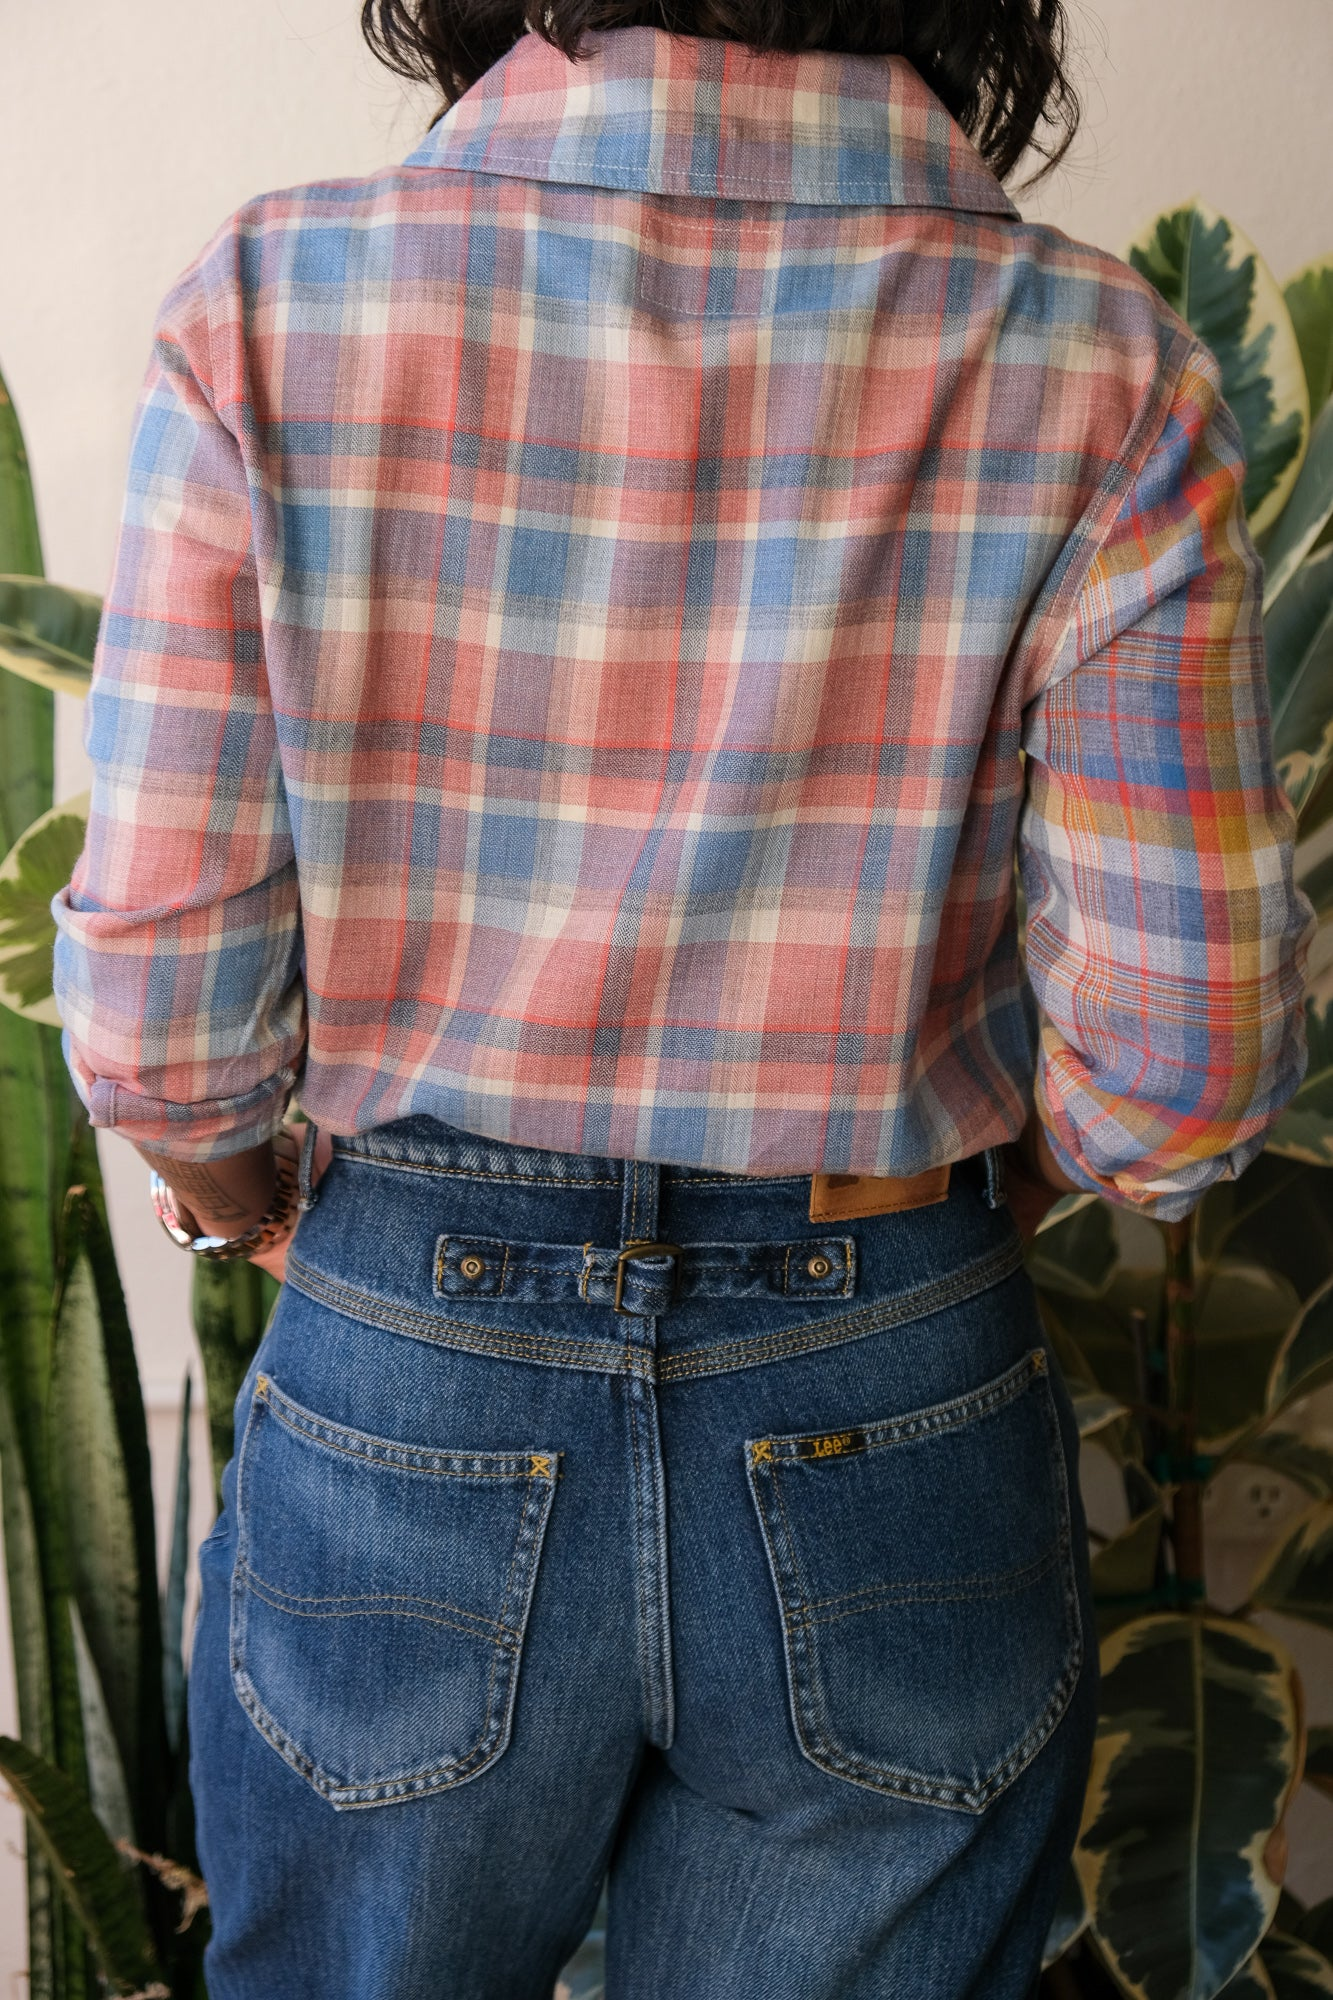 Jamison Shirt in Cotton Plaid